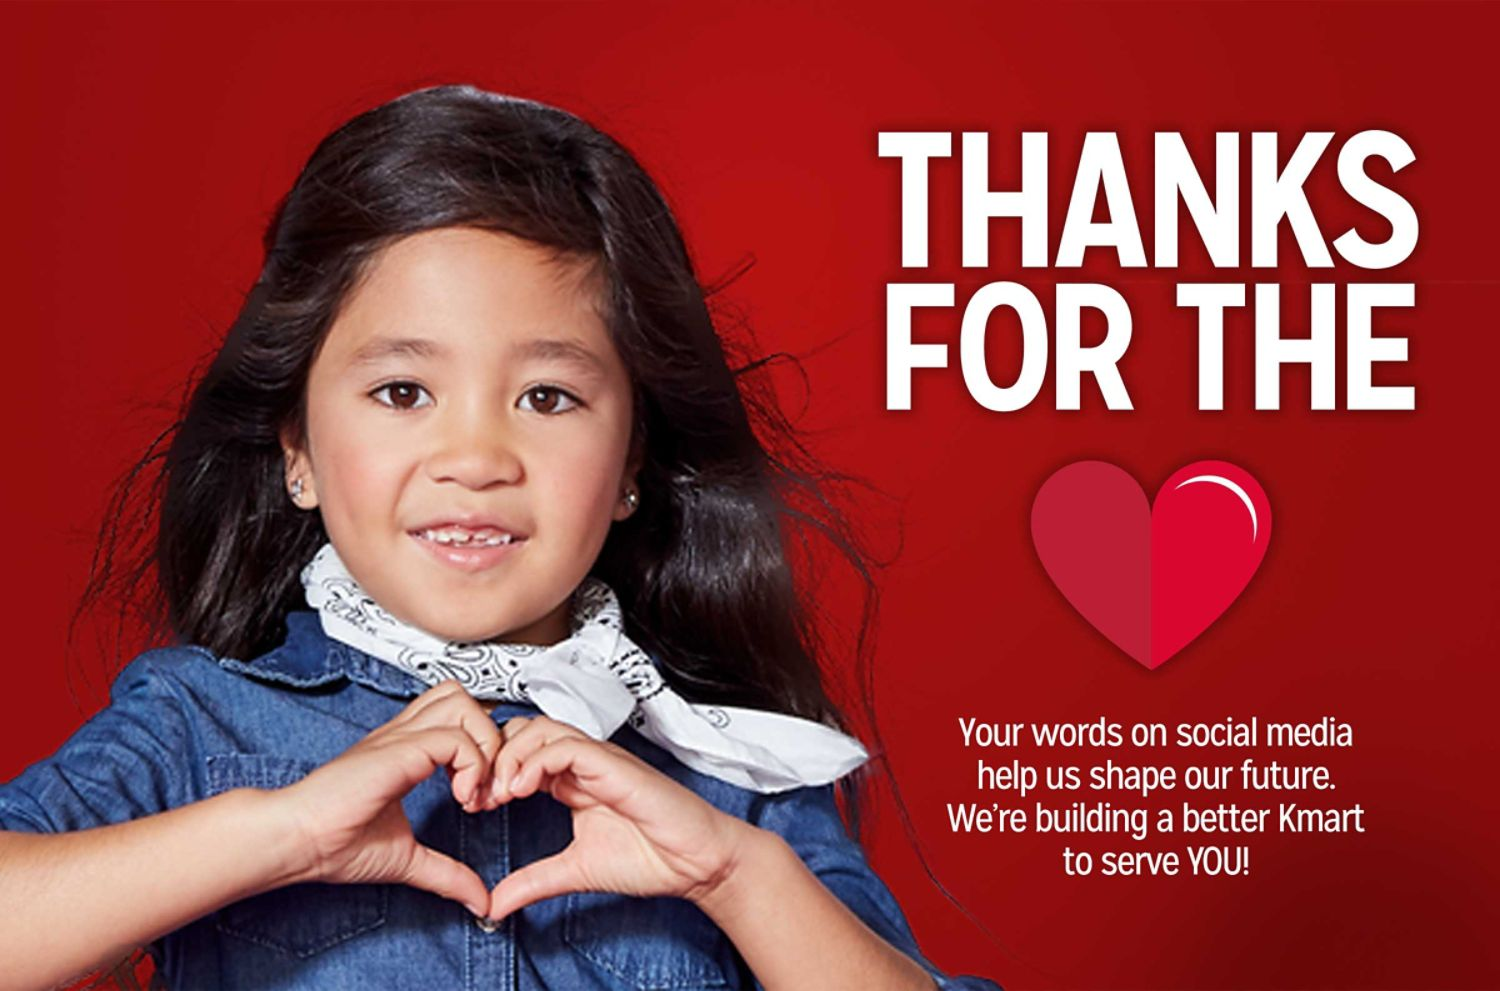 Thanks for the Love | Your words on social media help us shape our future. We're building a better Kmart to serve YOU!